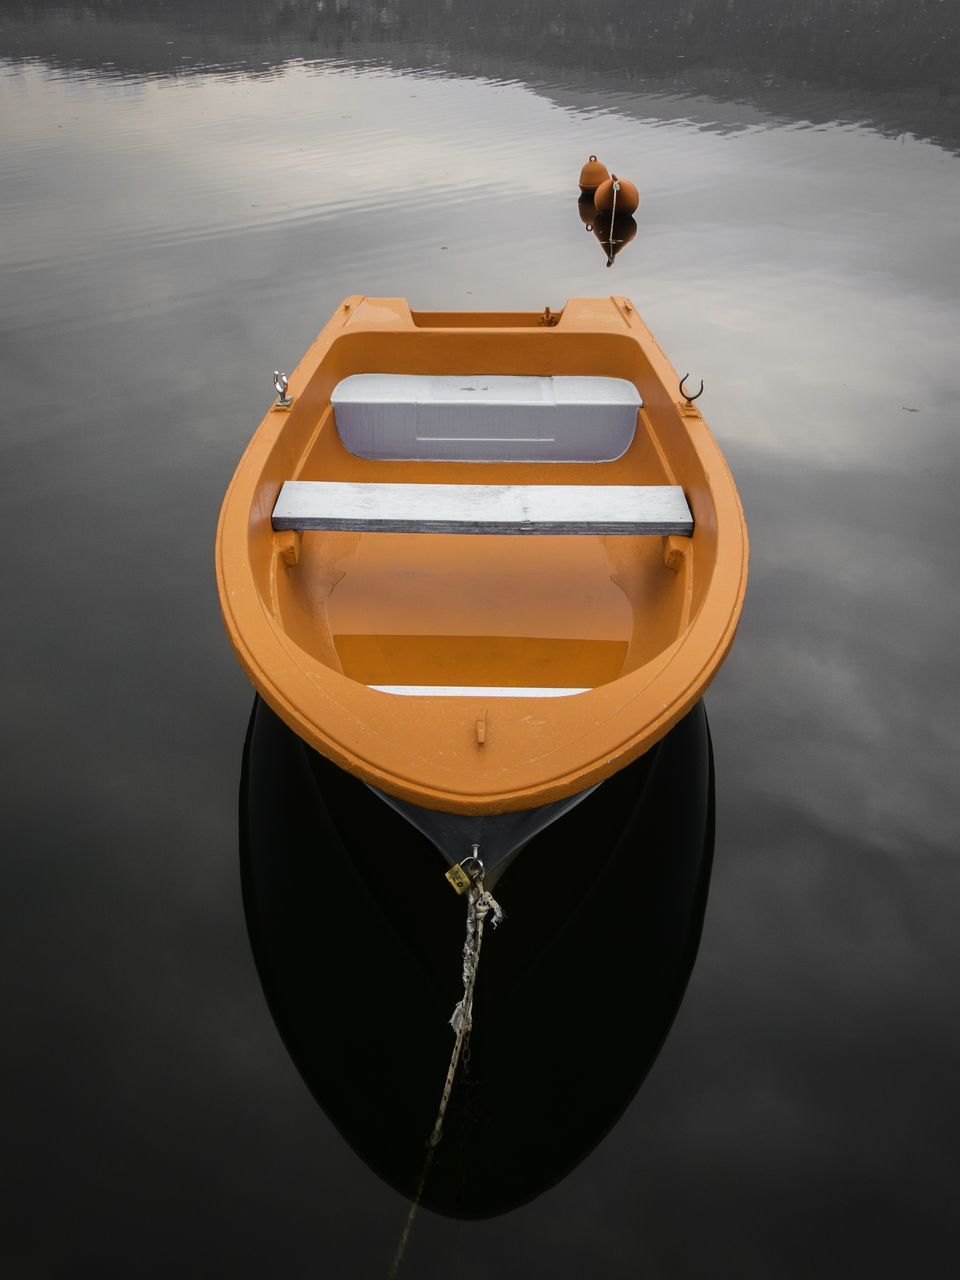 High Angle View Of Orange Rowboat Moored In Calm Lake